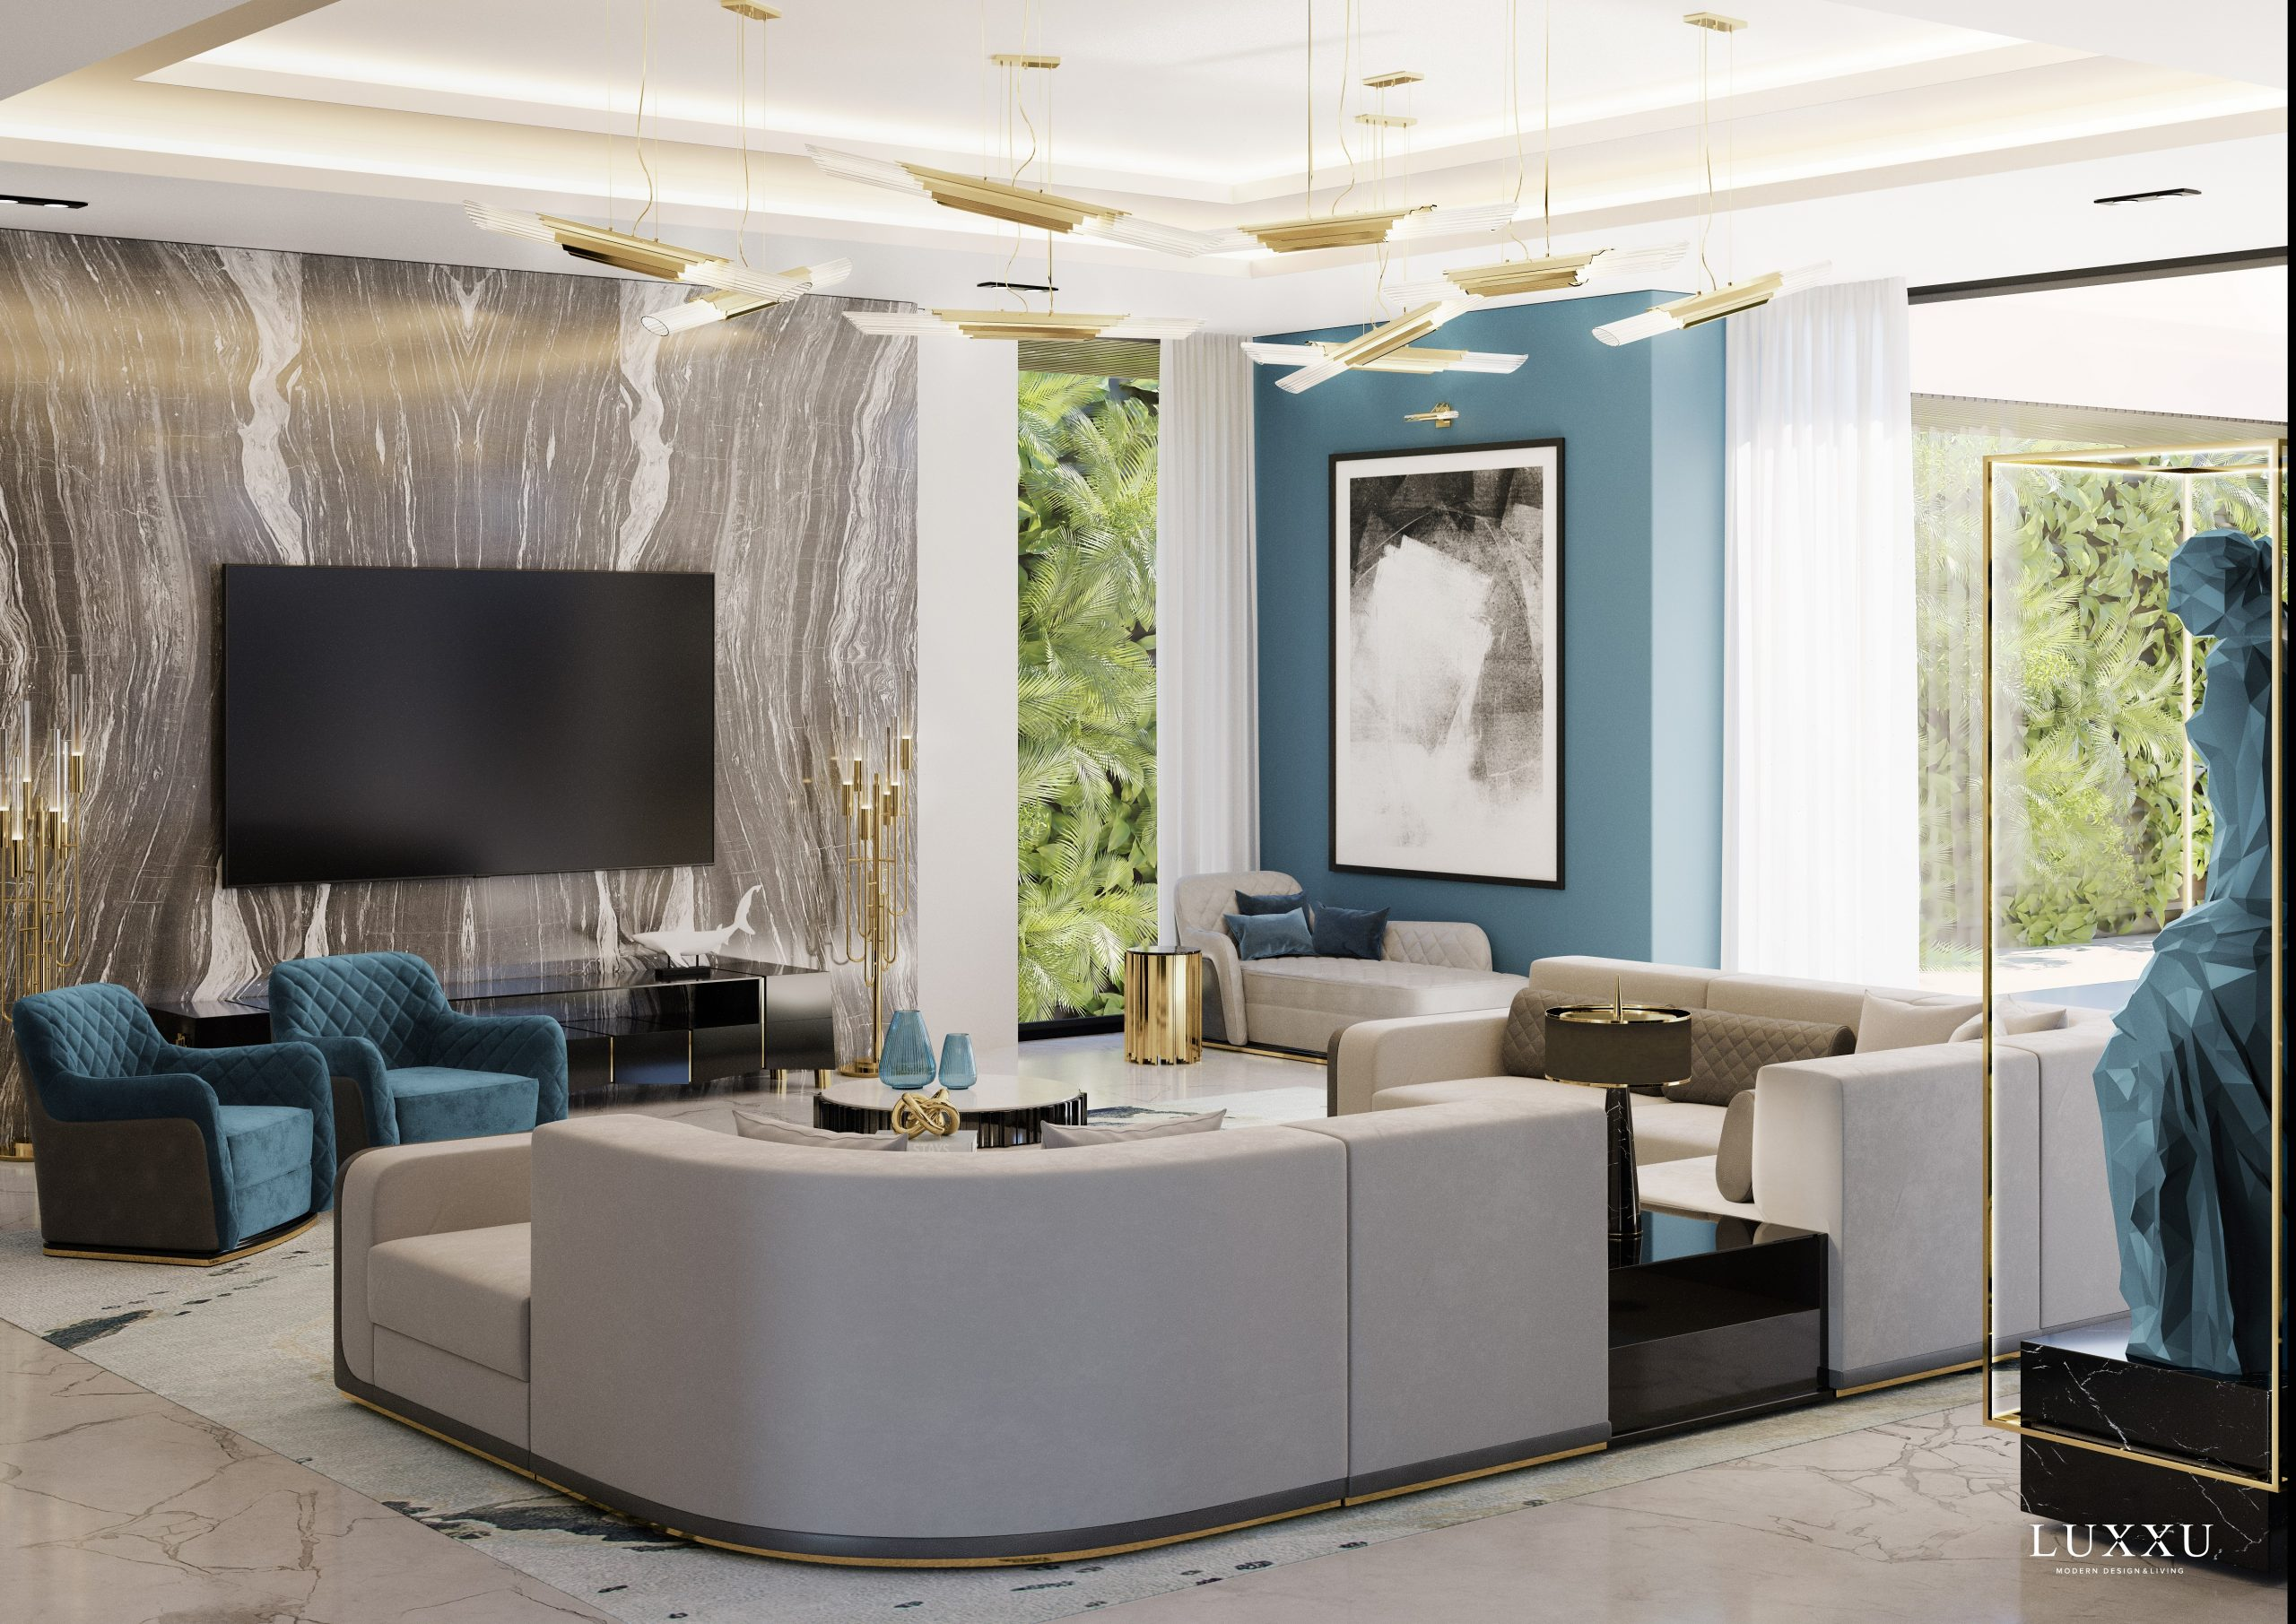 Be Acquainted With Luxury - An Exhibition Of Luxxu's New Masterpieces